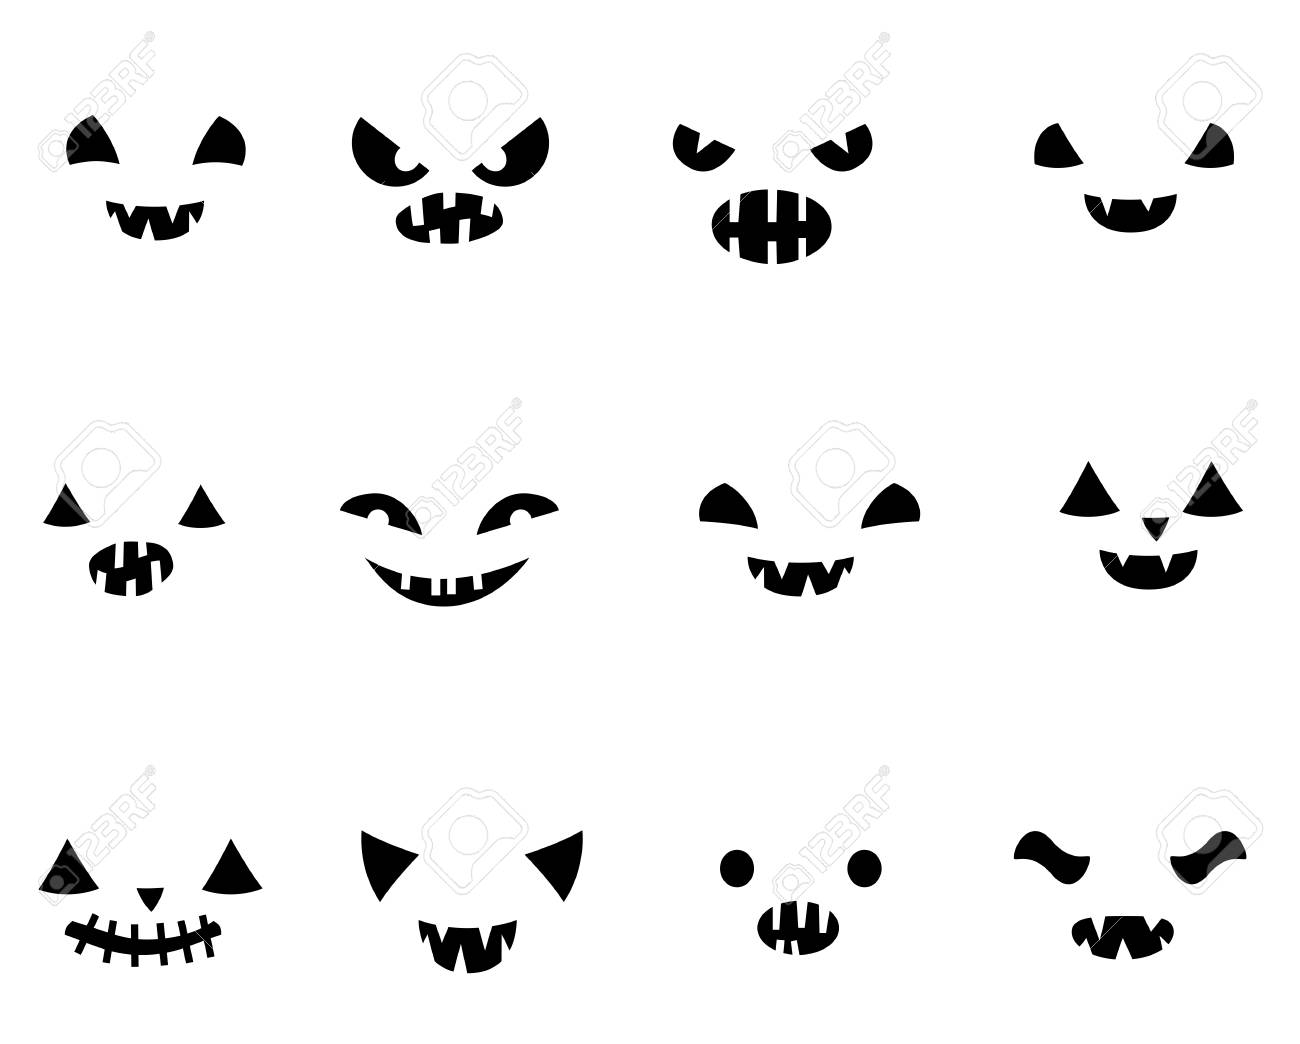 image about Pumpkin Faces Printable known as Mounted with carved Halloween pumpkin faces templates within black and..